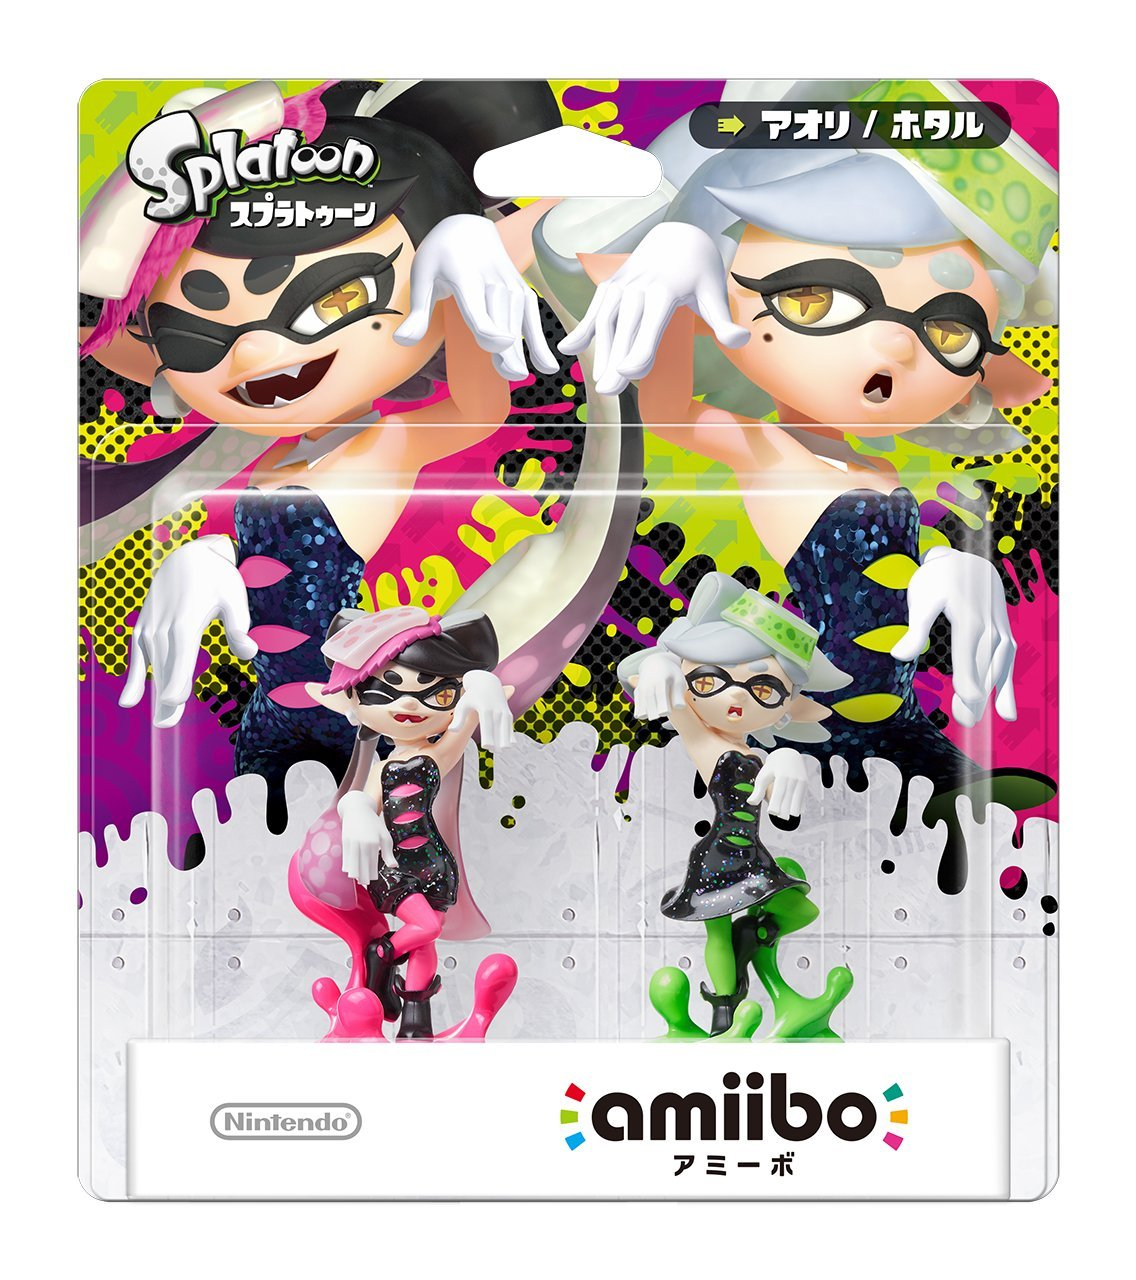 amllbo [aori/fire Fly] (Splatoon series) Nintendo WiiU/ 3DS